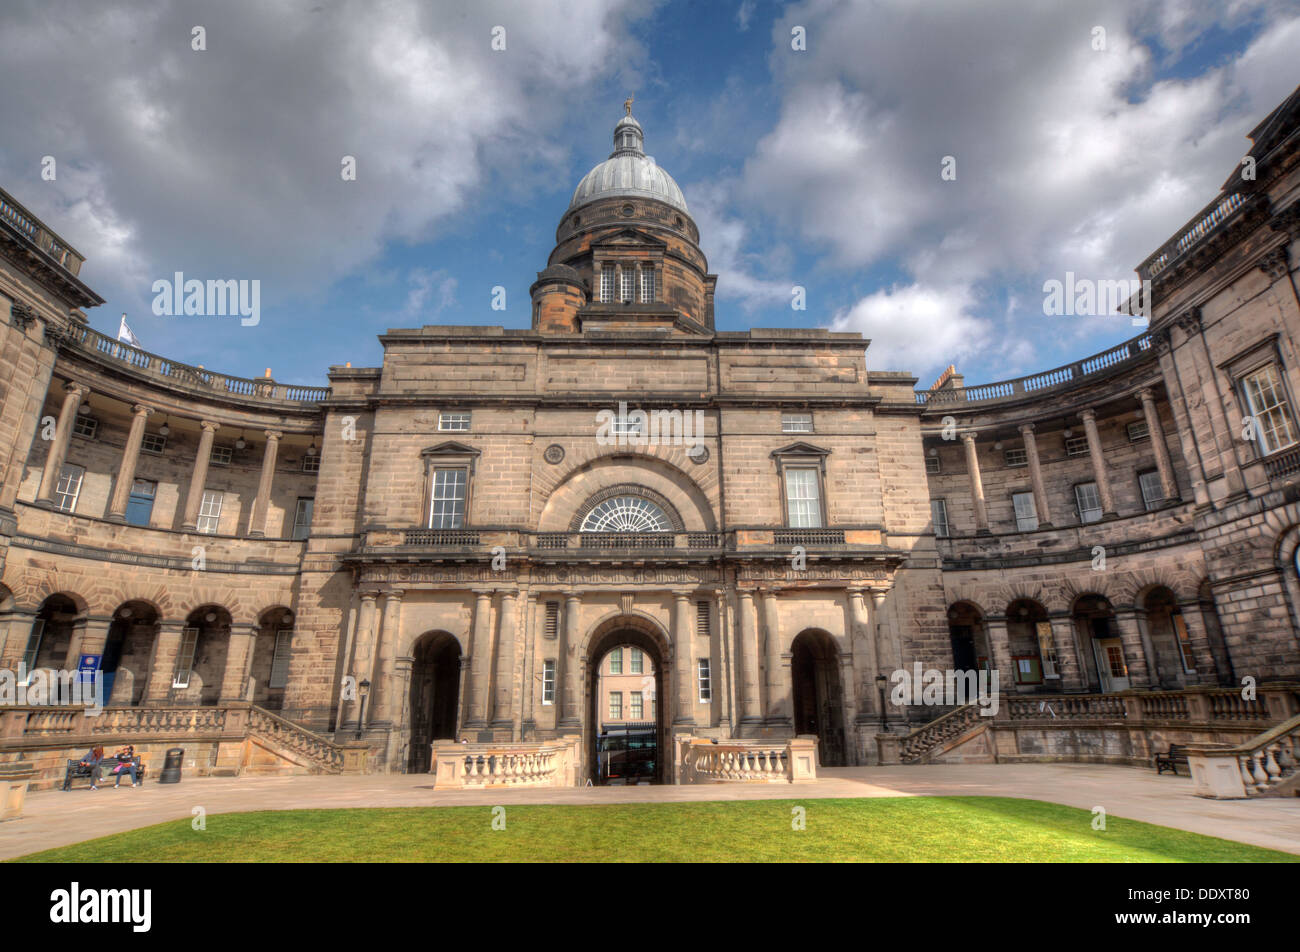 Tower/dome at Edinburgh University South College Lothian Scotland UK wide view - Stock Image